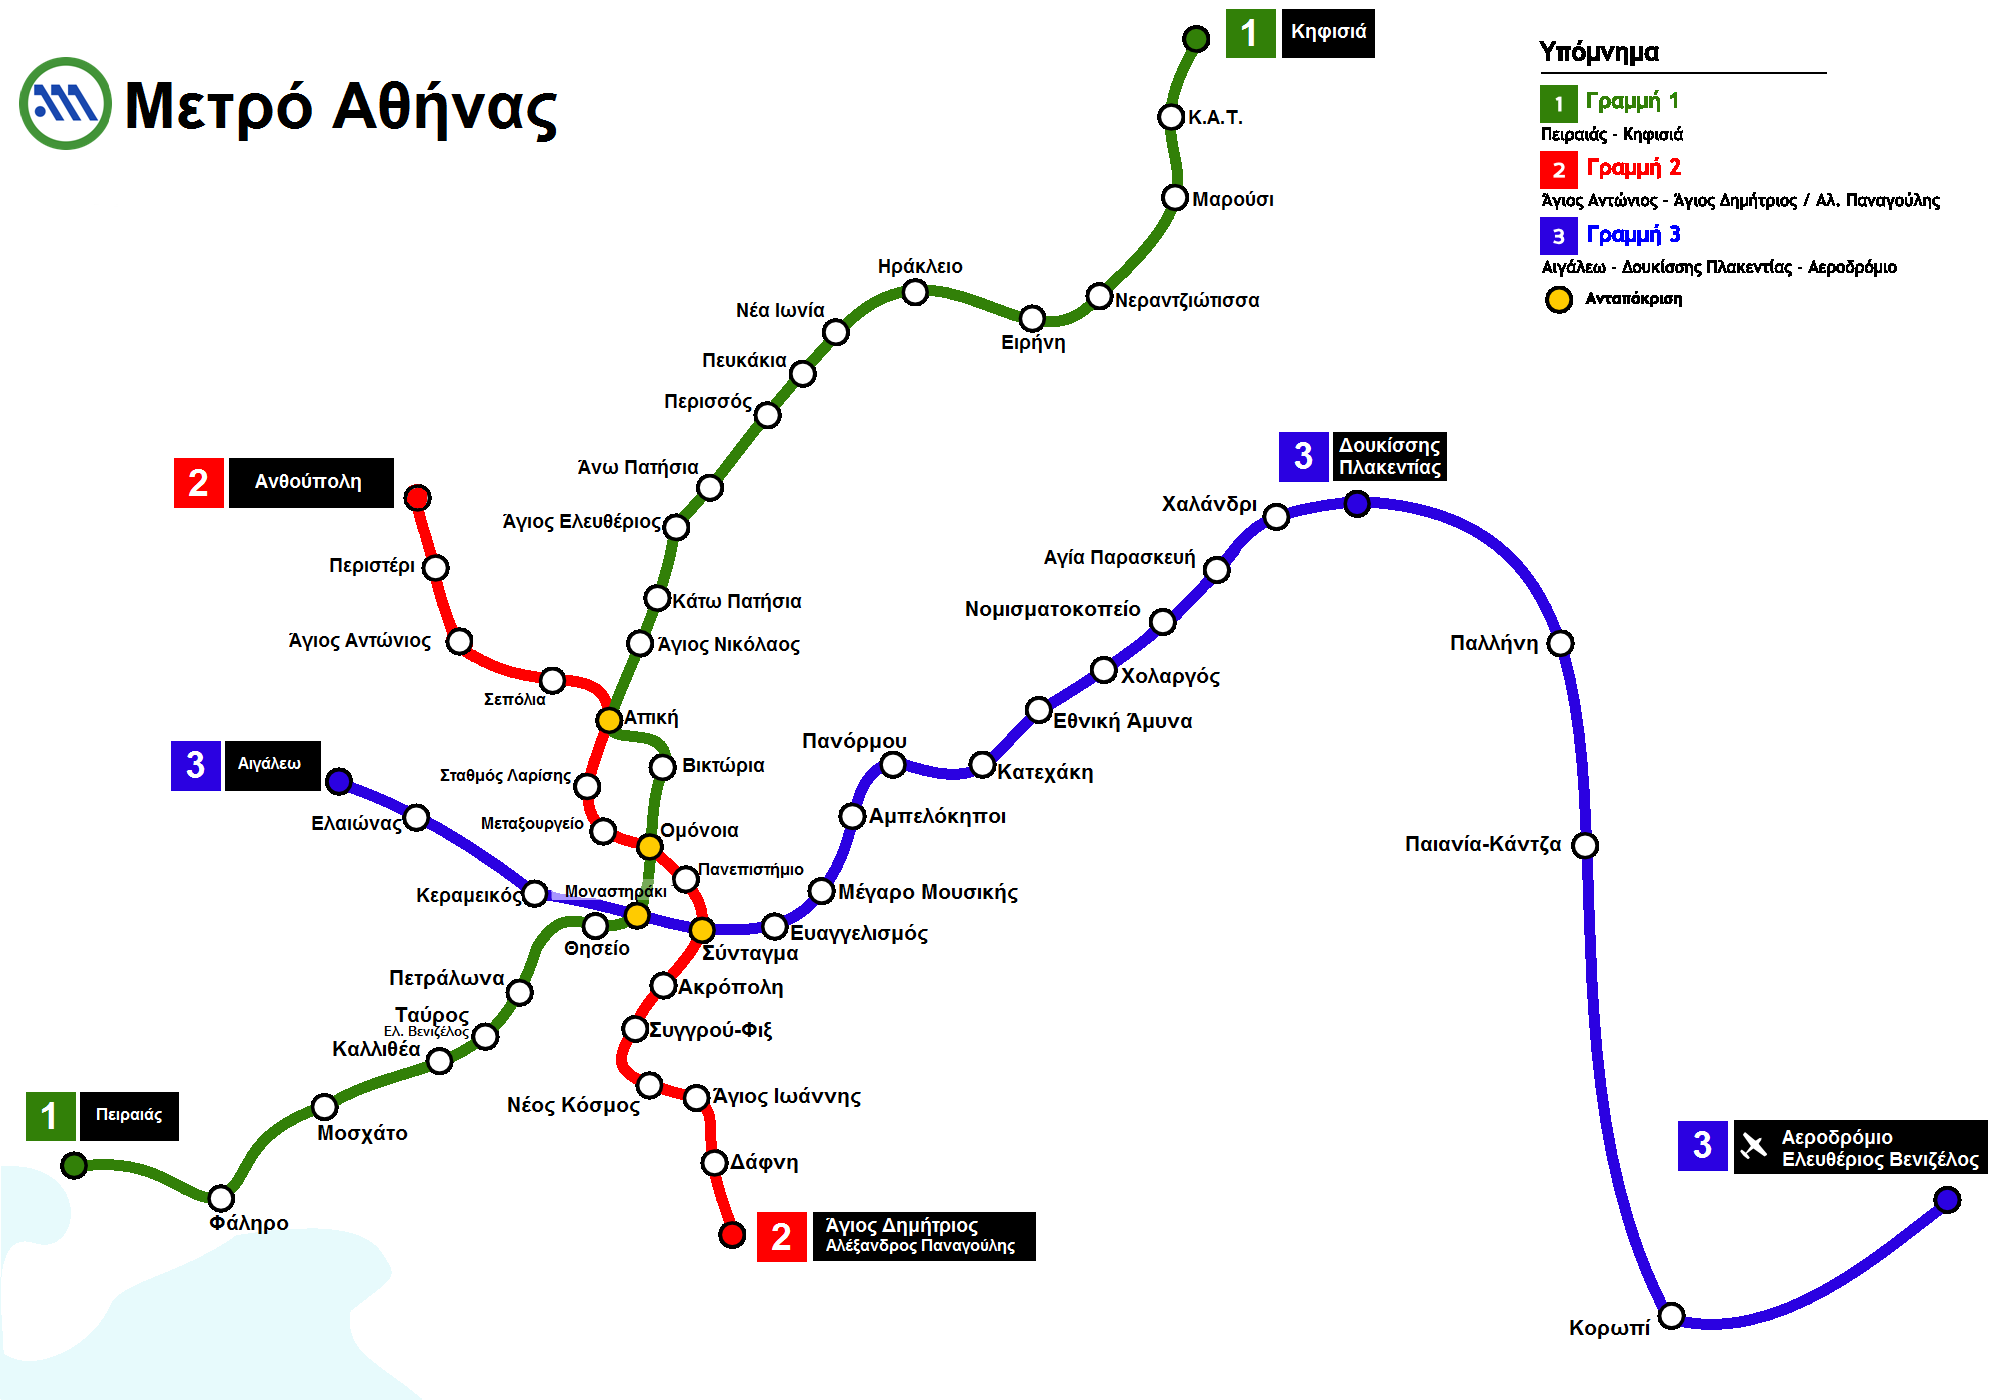 Athens Subway Map.File Athens Metro Map El 2013 Png Wikimedia Commons